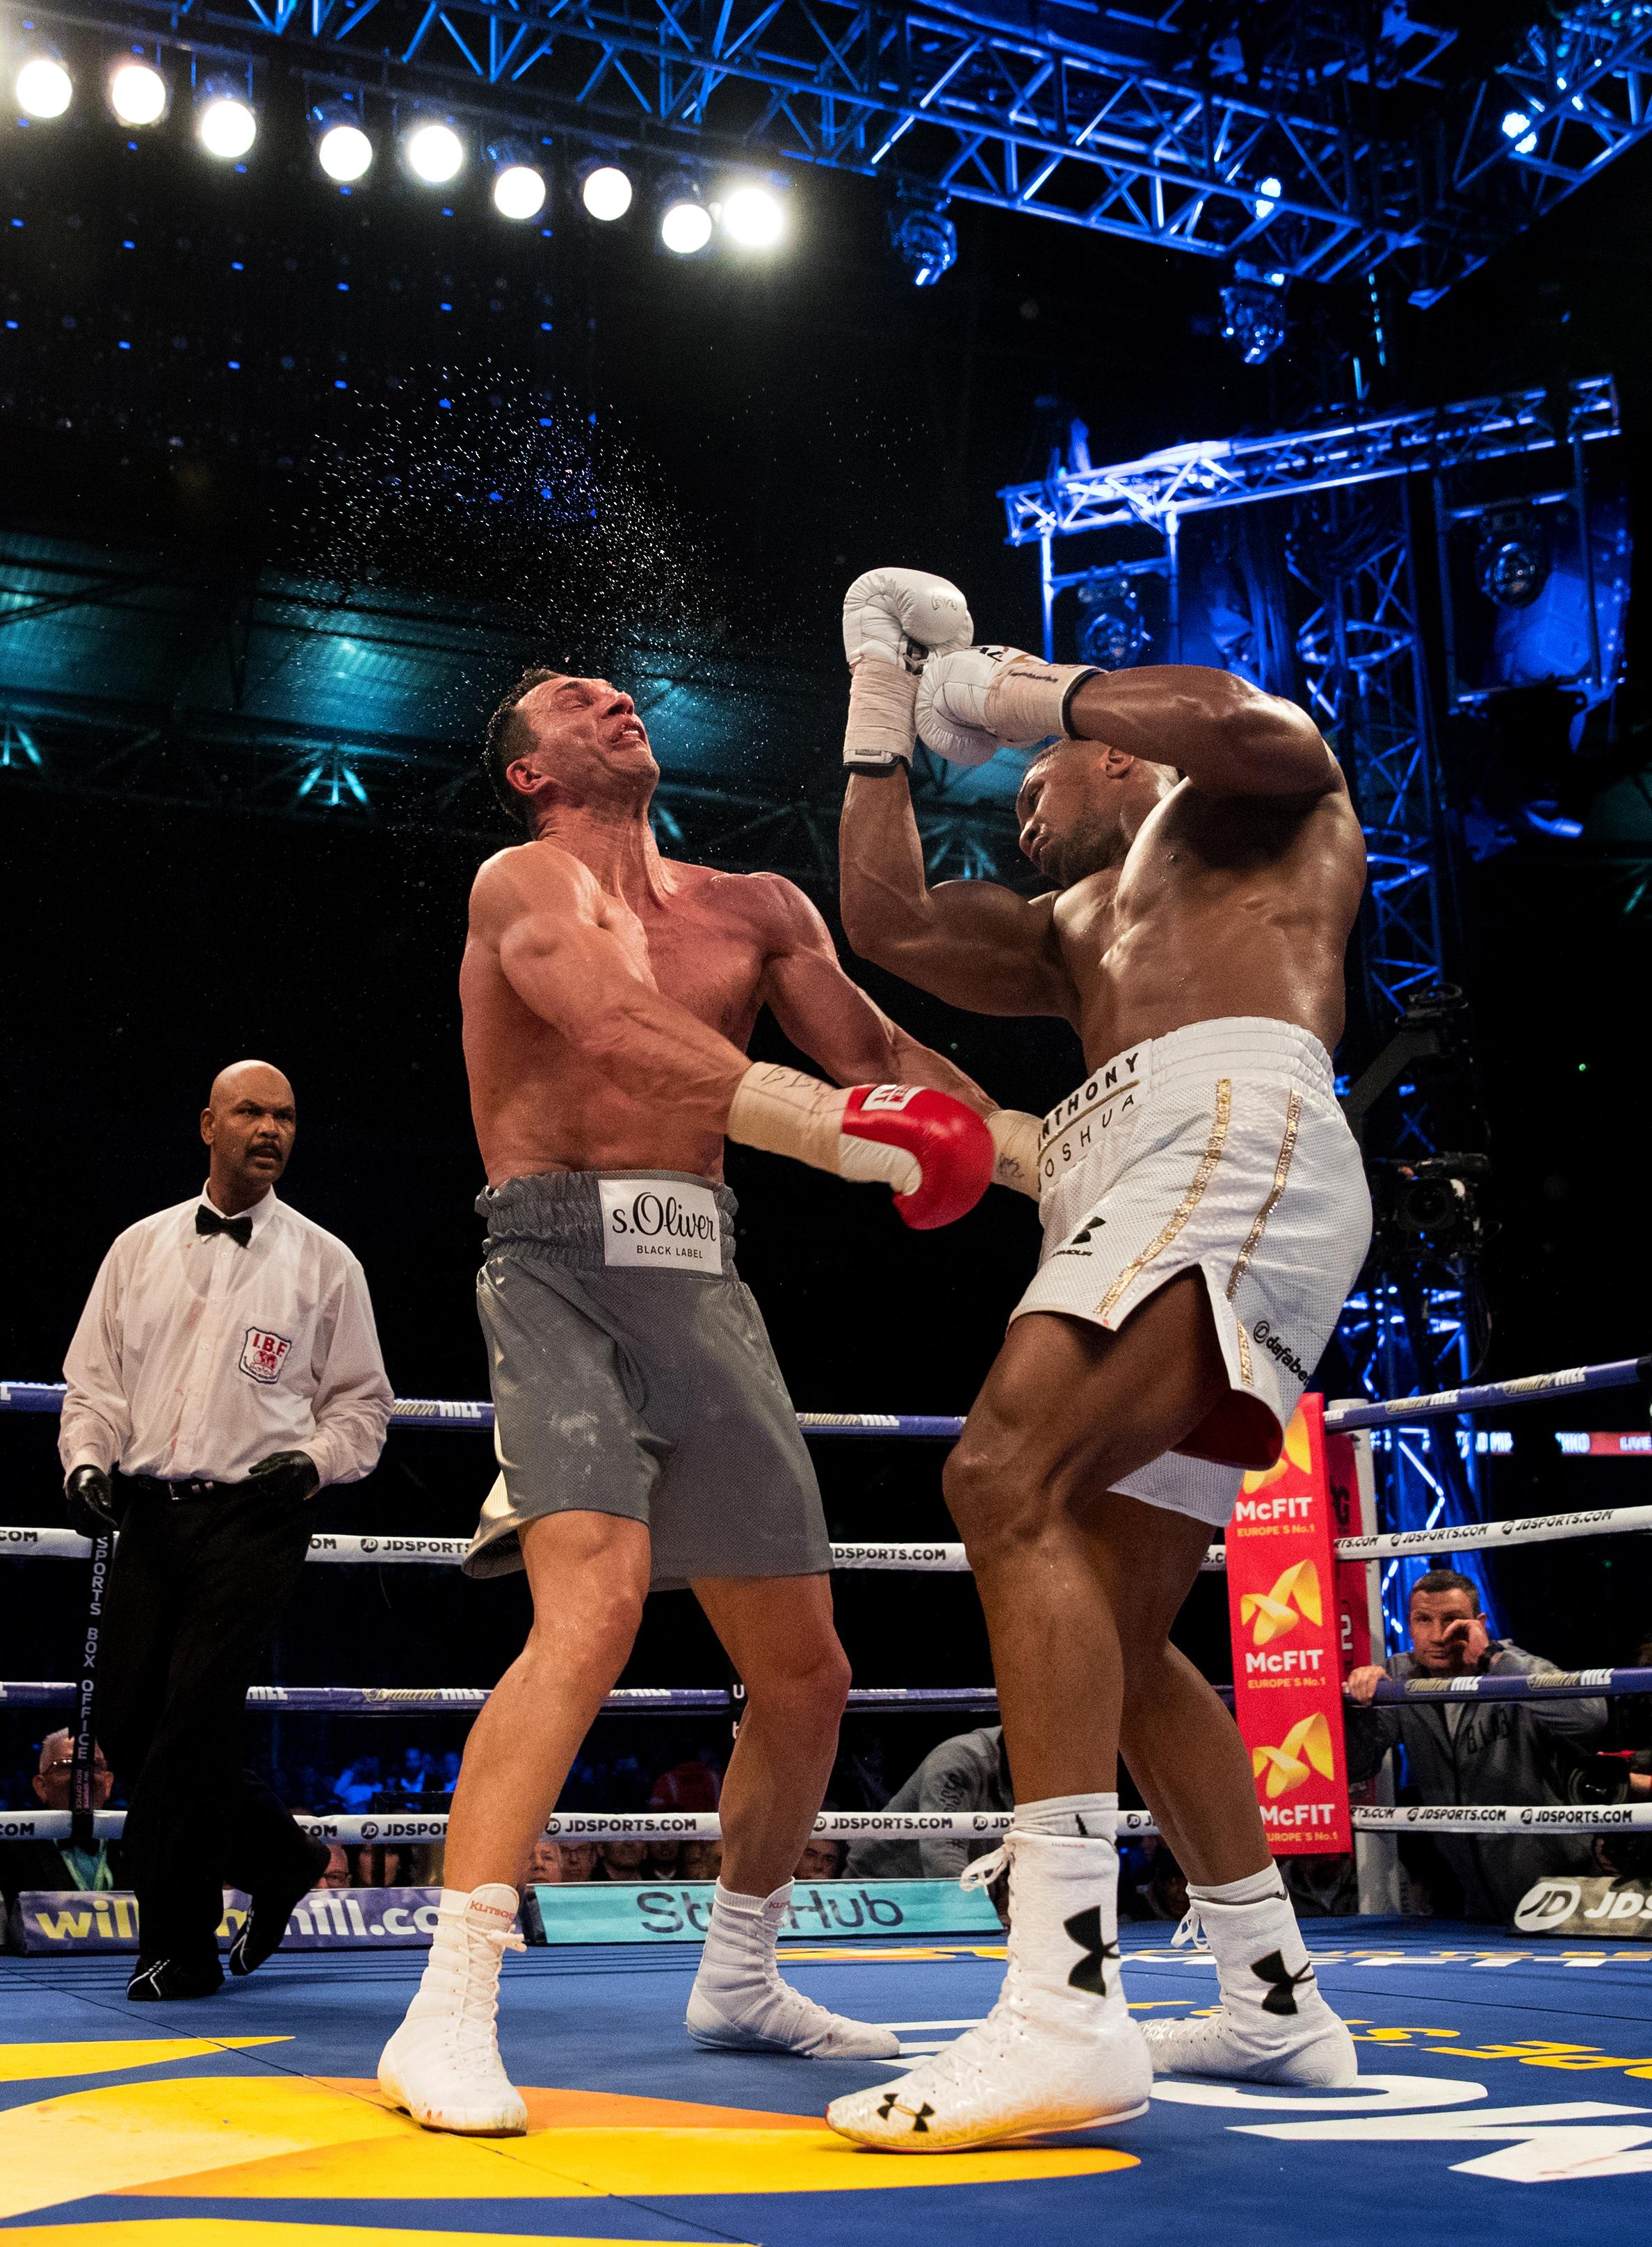 Anthony Joshua survived some scary moments against Wladimir Klitschko before brutally stopping the veteran in the 11th round